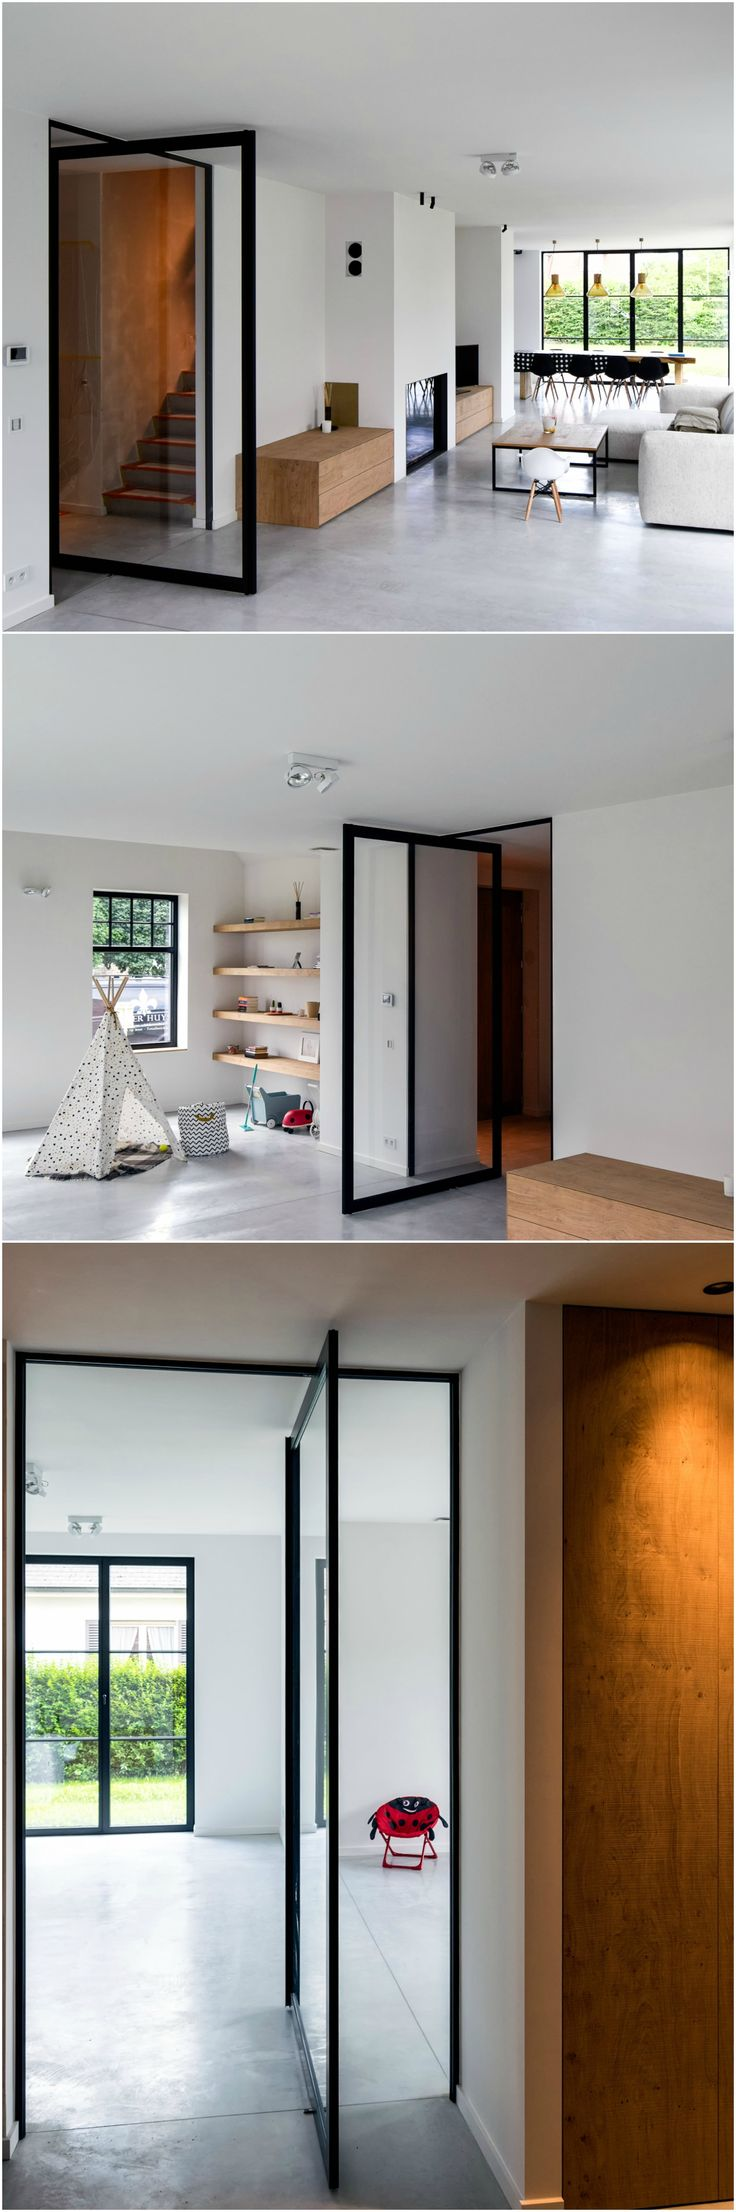 "Glass pivot door ""steel look"" design in a modern interior with Scandinavian design influences.  The pivot door is made from black anodized aluminium and transparent glass. The pivoting hinge is integrated in the black frame, without any built-in parts in either floor or ceiling. #pivotdoor #anywaydoors"